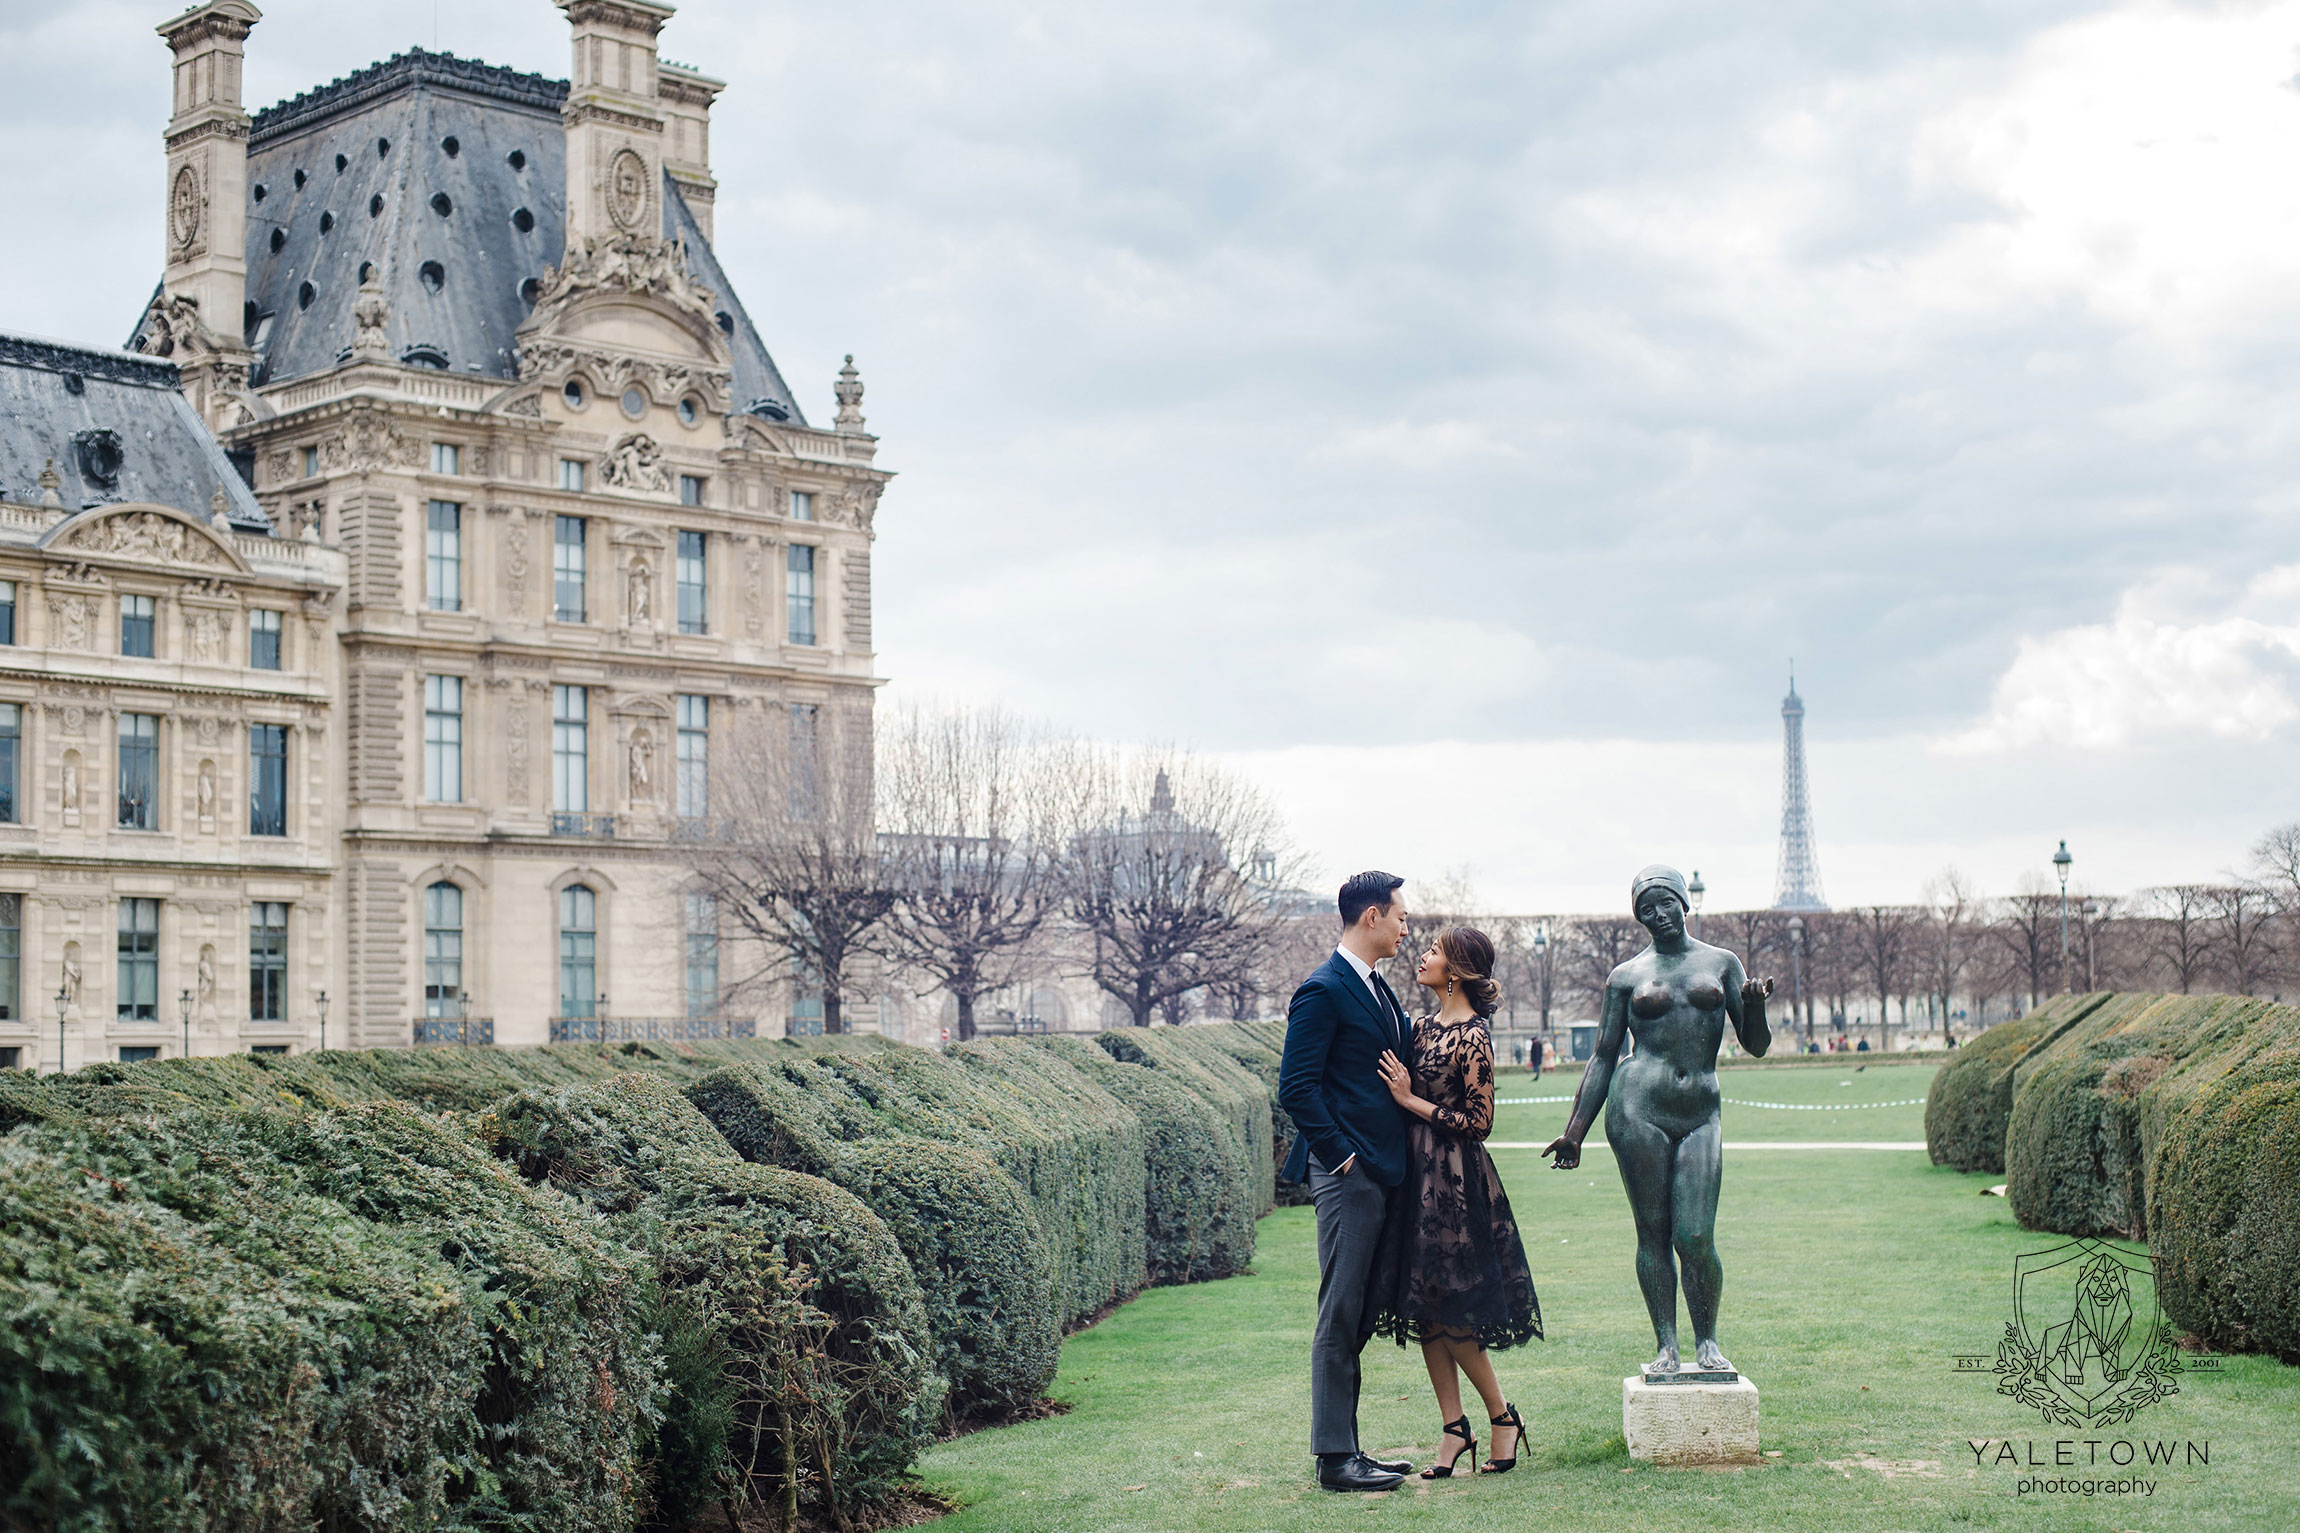 paris-engagement-session-jardin-des-tuileries-yaletown-photography-vancouver-wedding-photographer-paris-wedding-photographer-photo